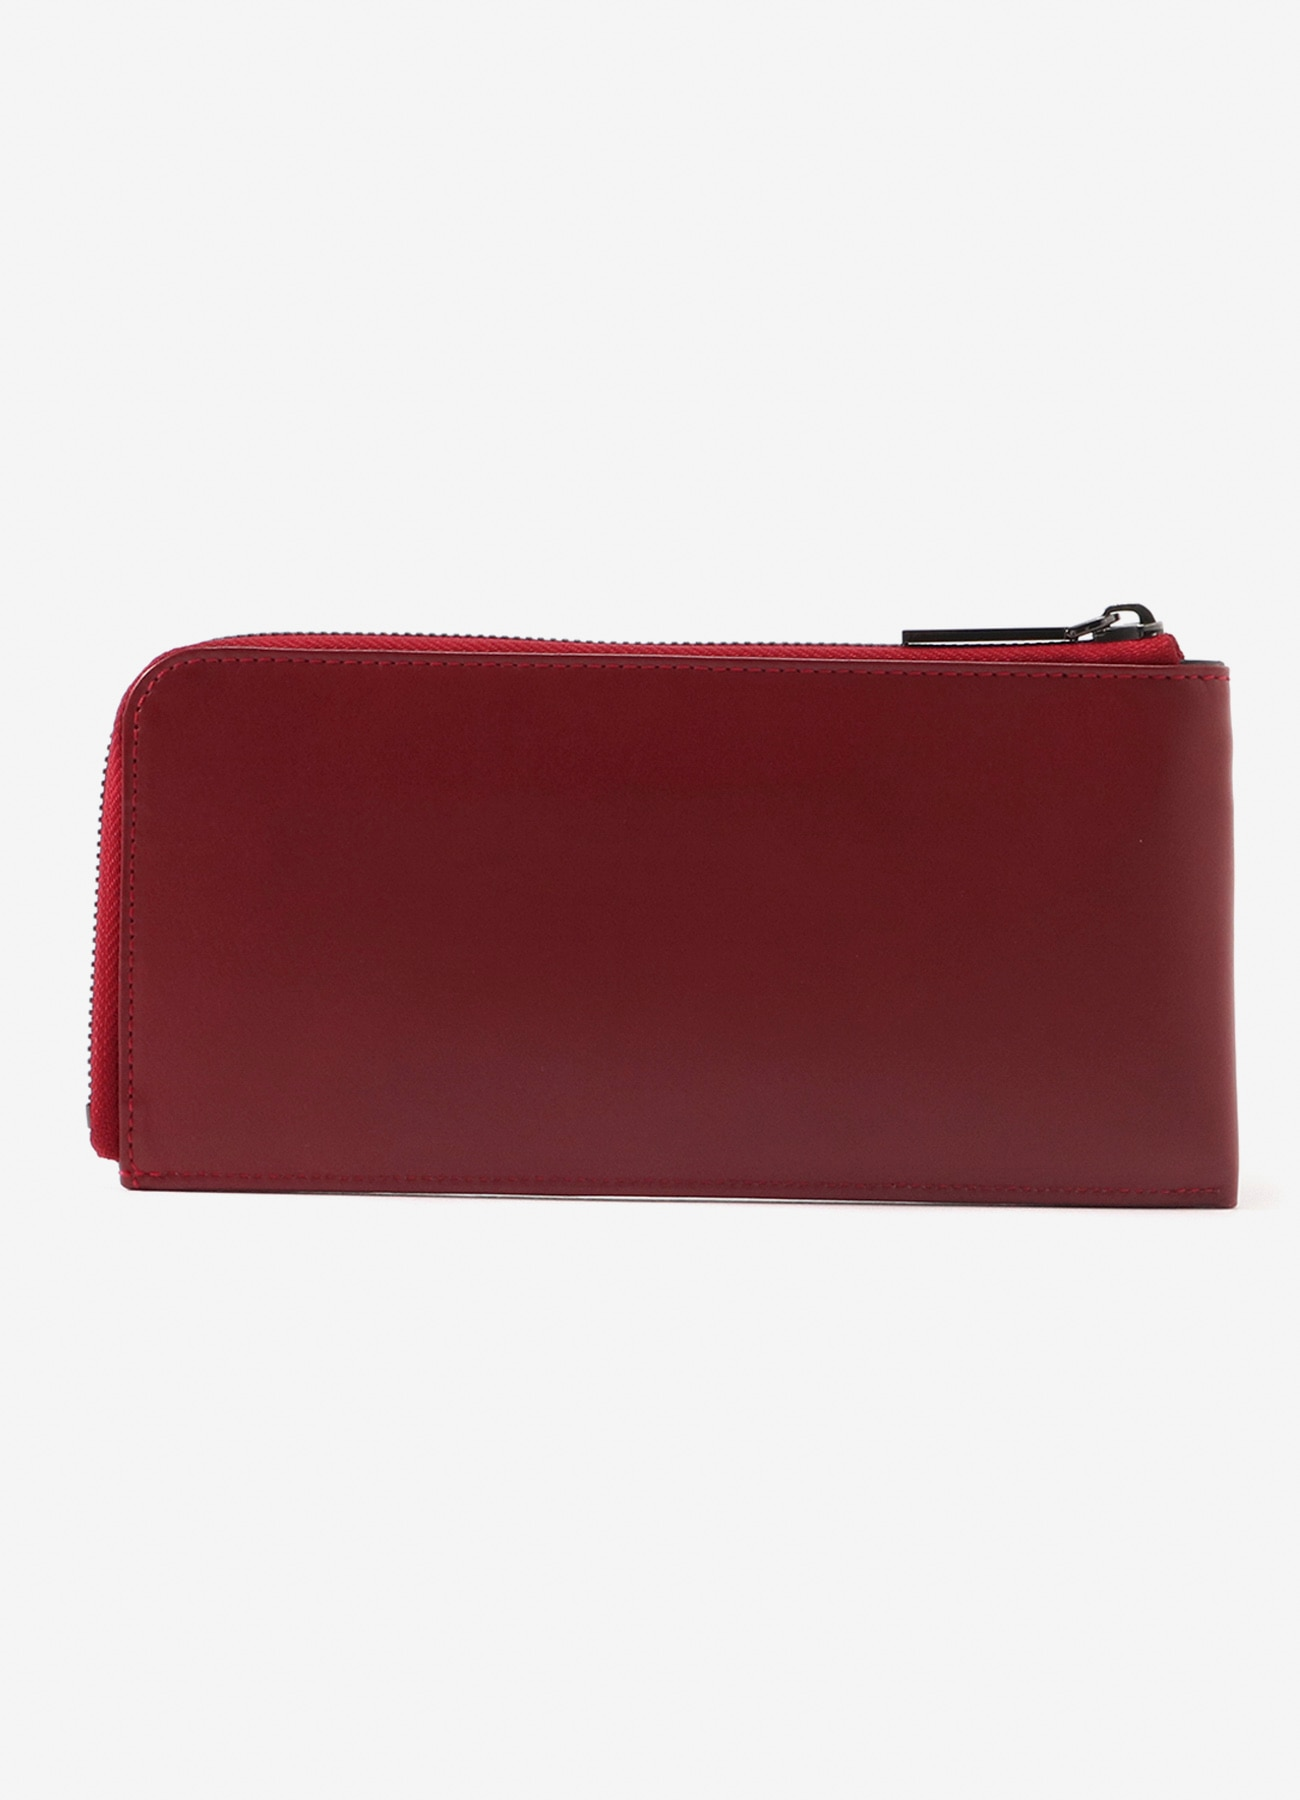 Plain(long wallet)